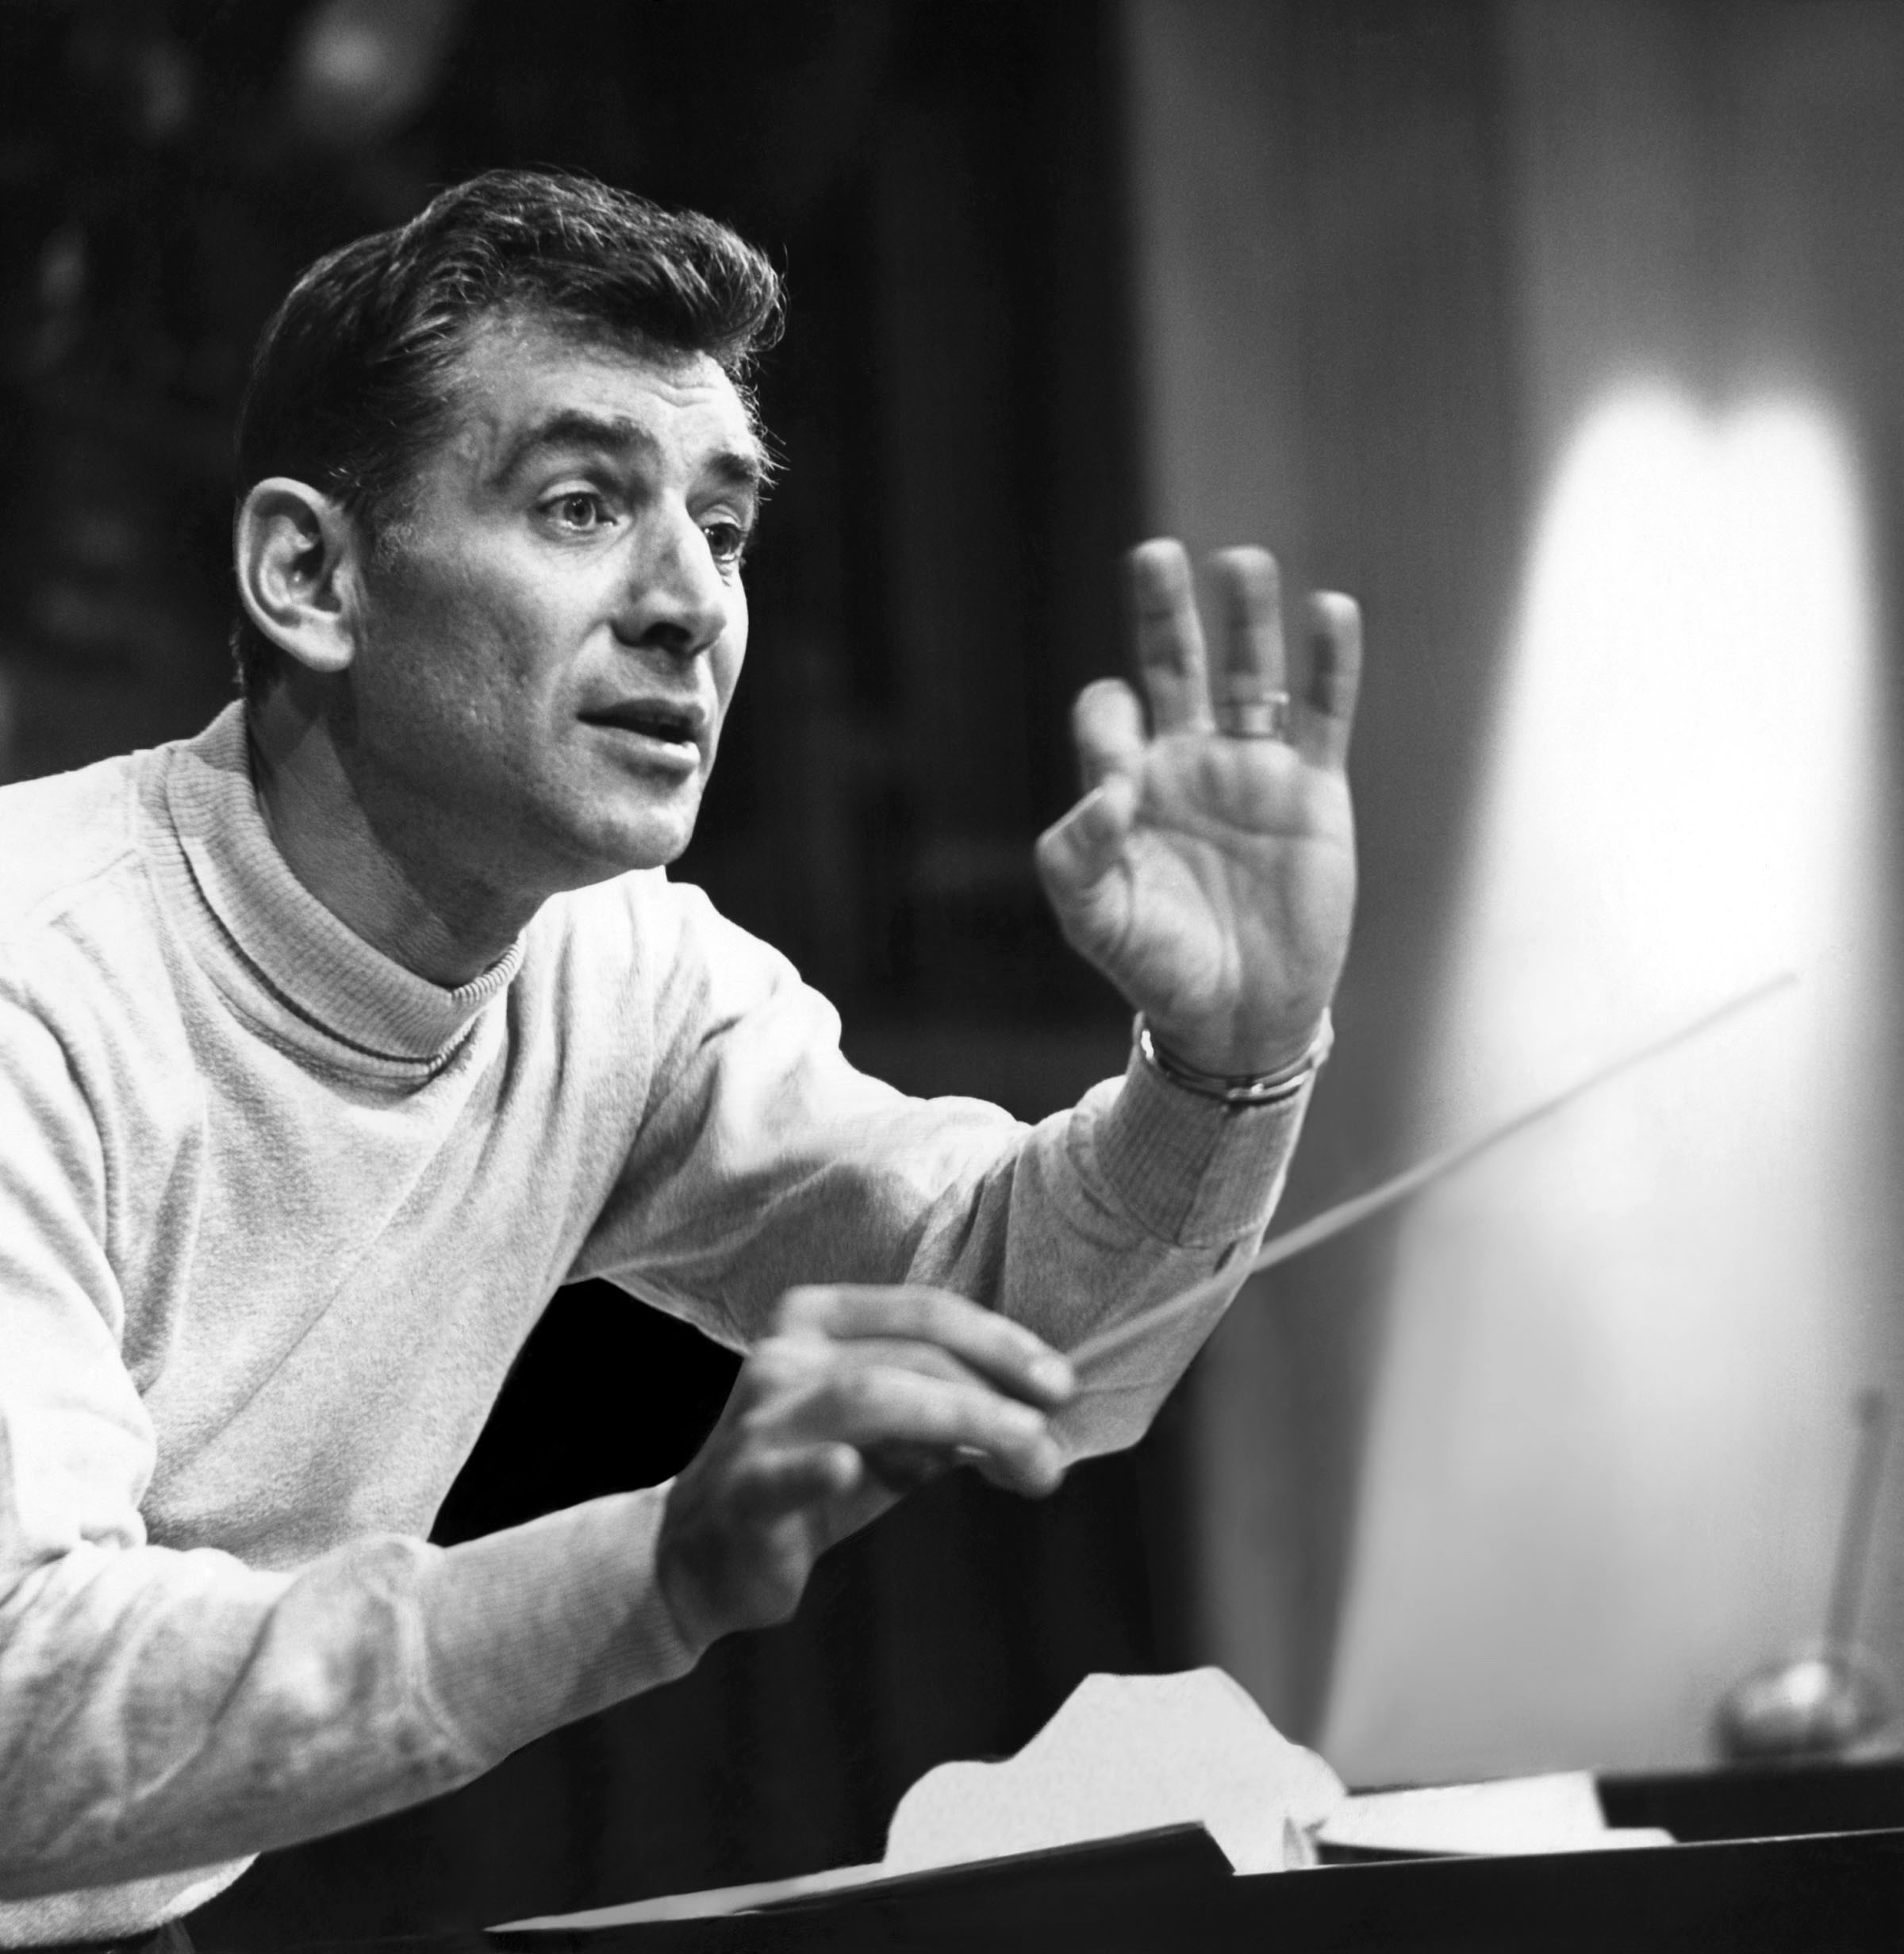 Leonard Bernstein conducting, holding a baton in his right hand.